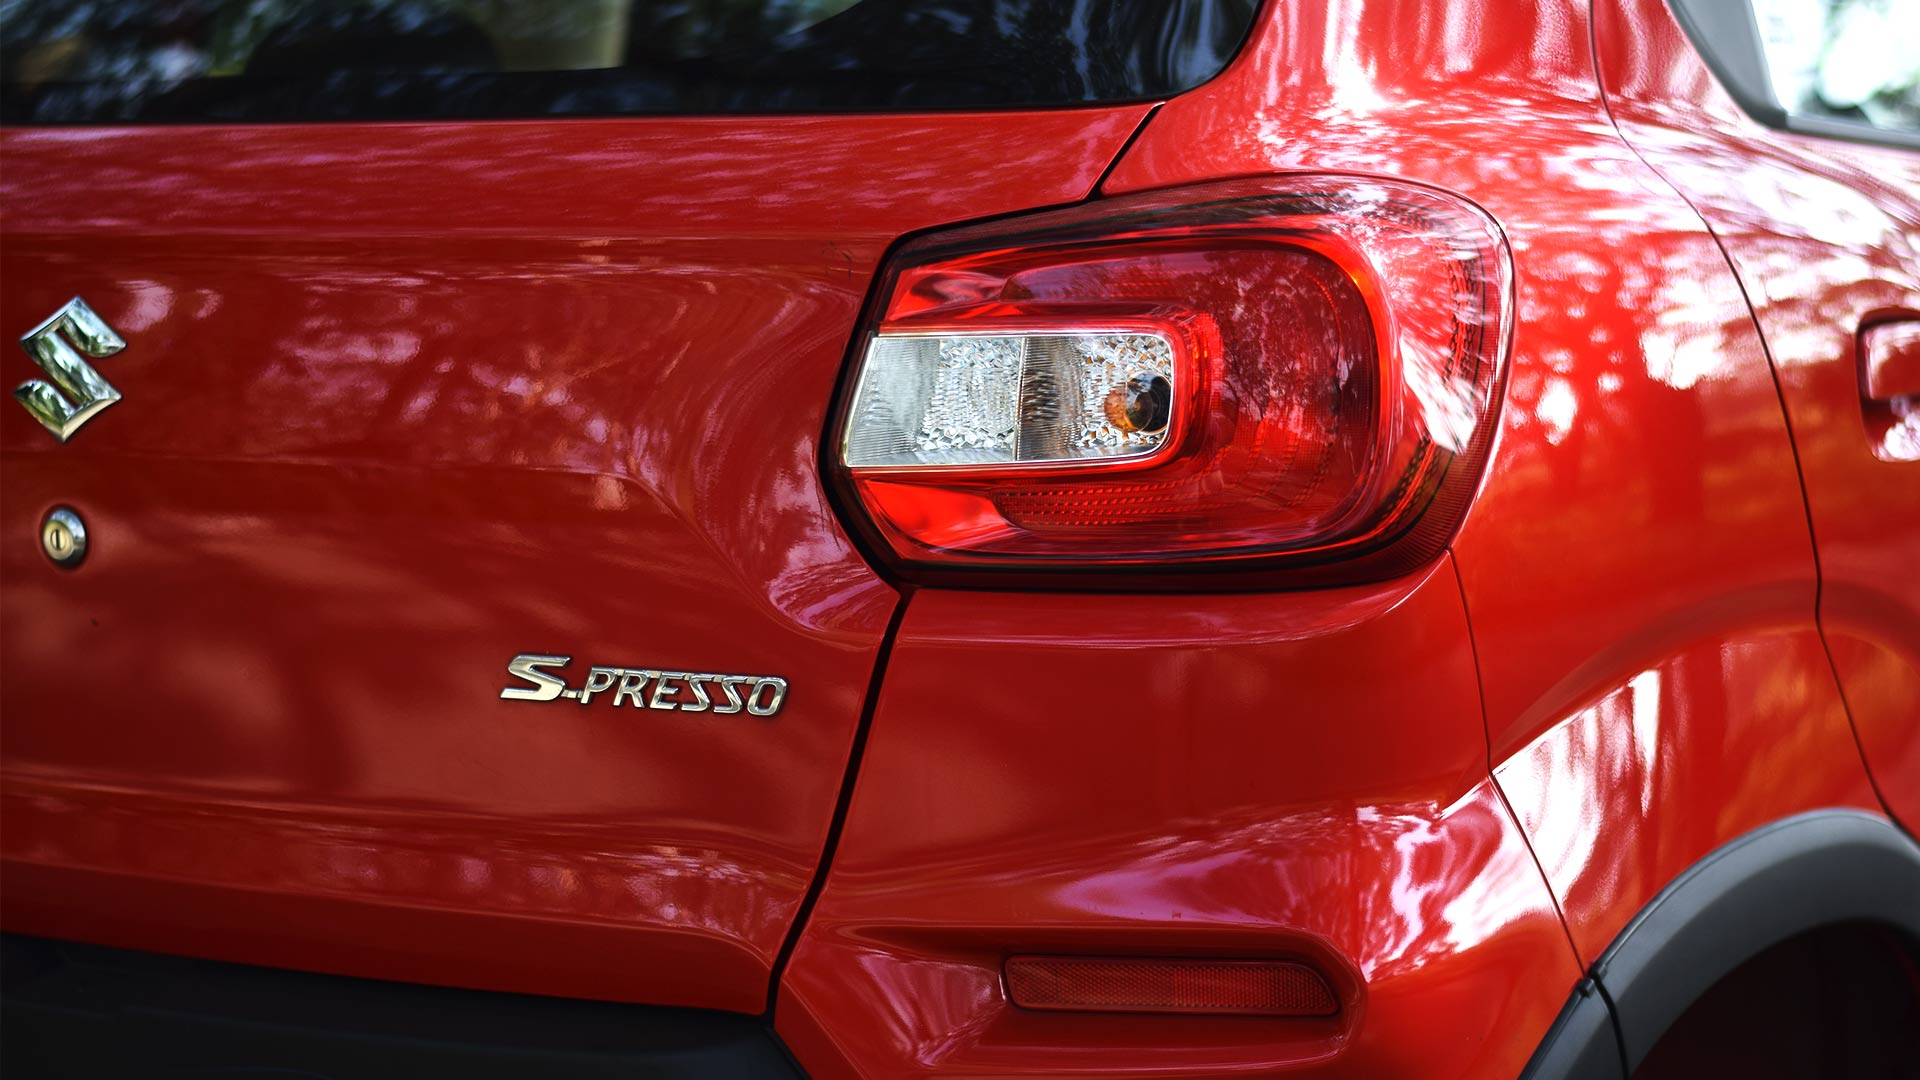 S-Presso Emblem and right tail light